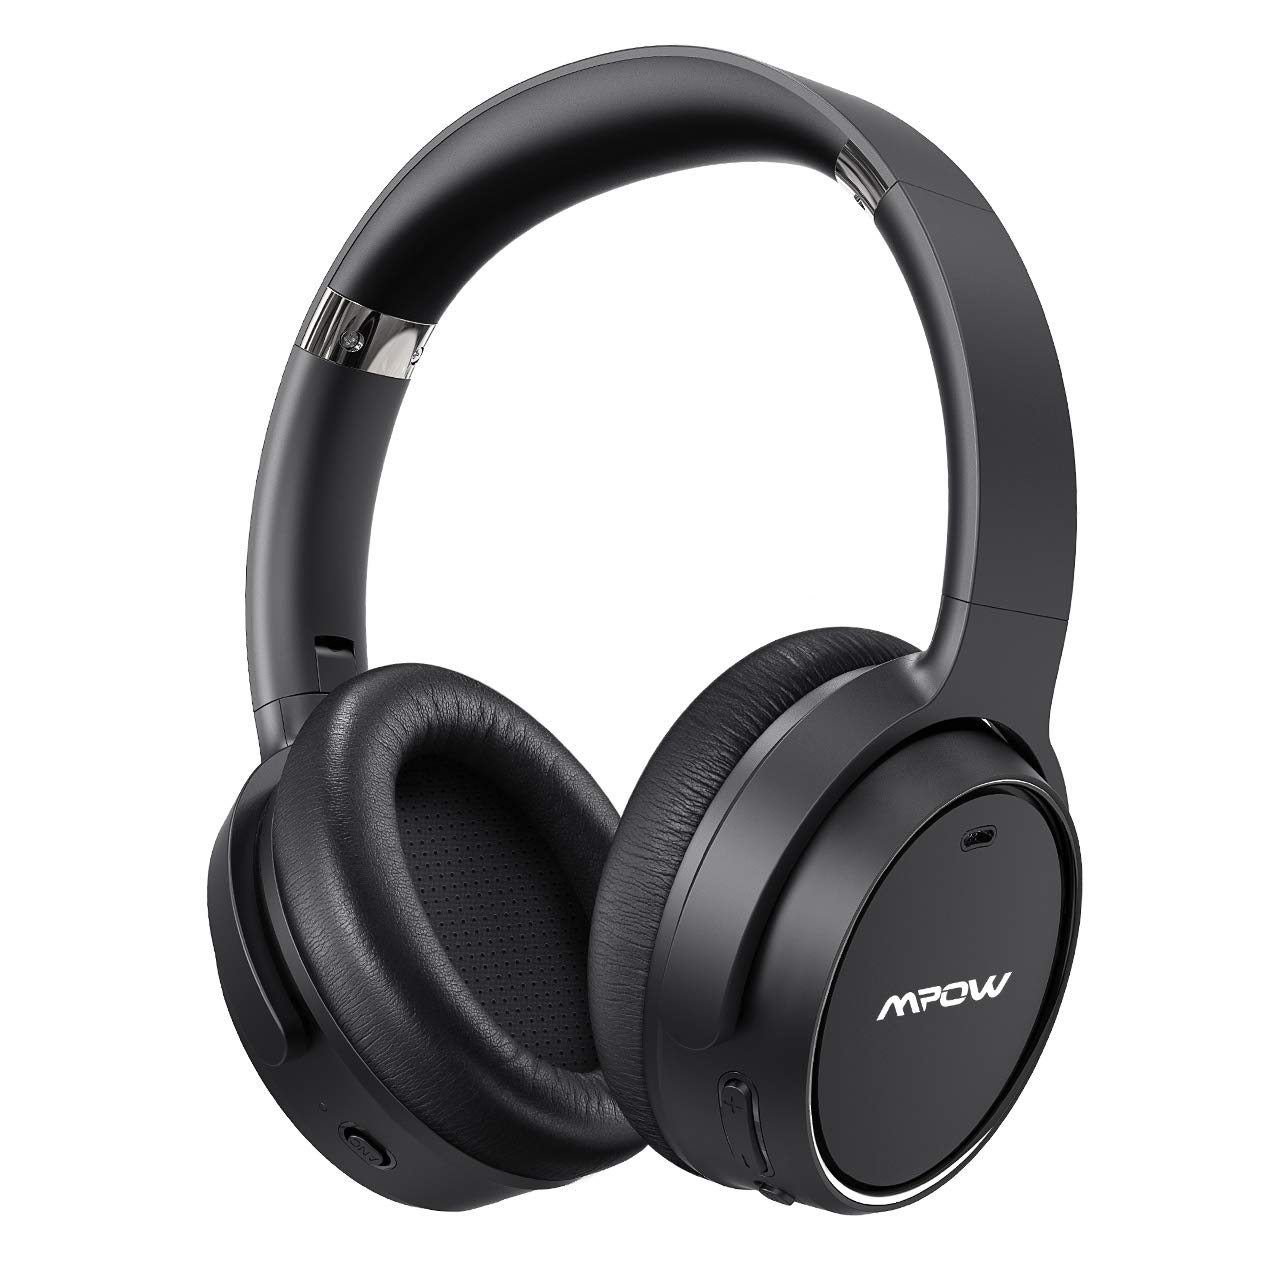 Mpow H19 Hybrid Noise Cancelling Headphones, Upgraded Bluetooth 5.0 Over Ear Wireless Headphones with 30H Playtime, Deep Bass, CVC 6.0 Microphone, ANC Headphones for Travel Work